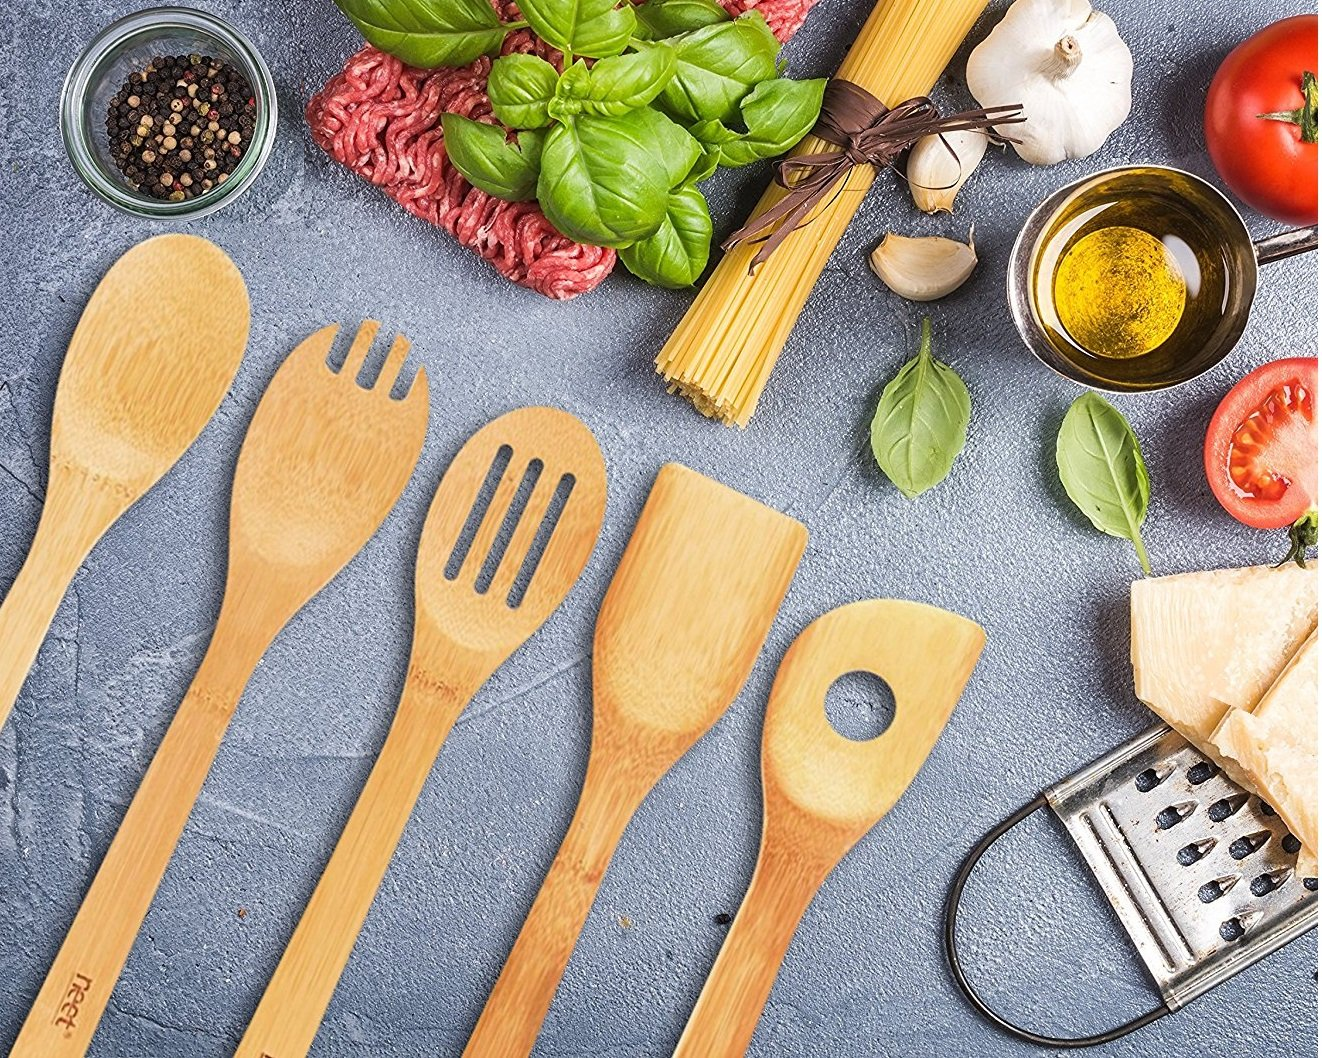 Organic Bamboo Cooking & Serving Utensil Set By Neet - 6 Piece Set | Spoon & Spatula Mix | Utensil Holder Organizer | Non Stick Wooden Kitchen Gadgets | Great Gift For Chefs & Foodies by Neet (Image #6)